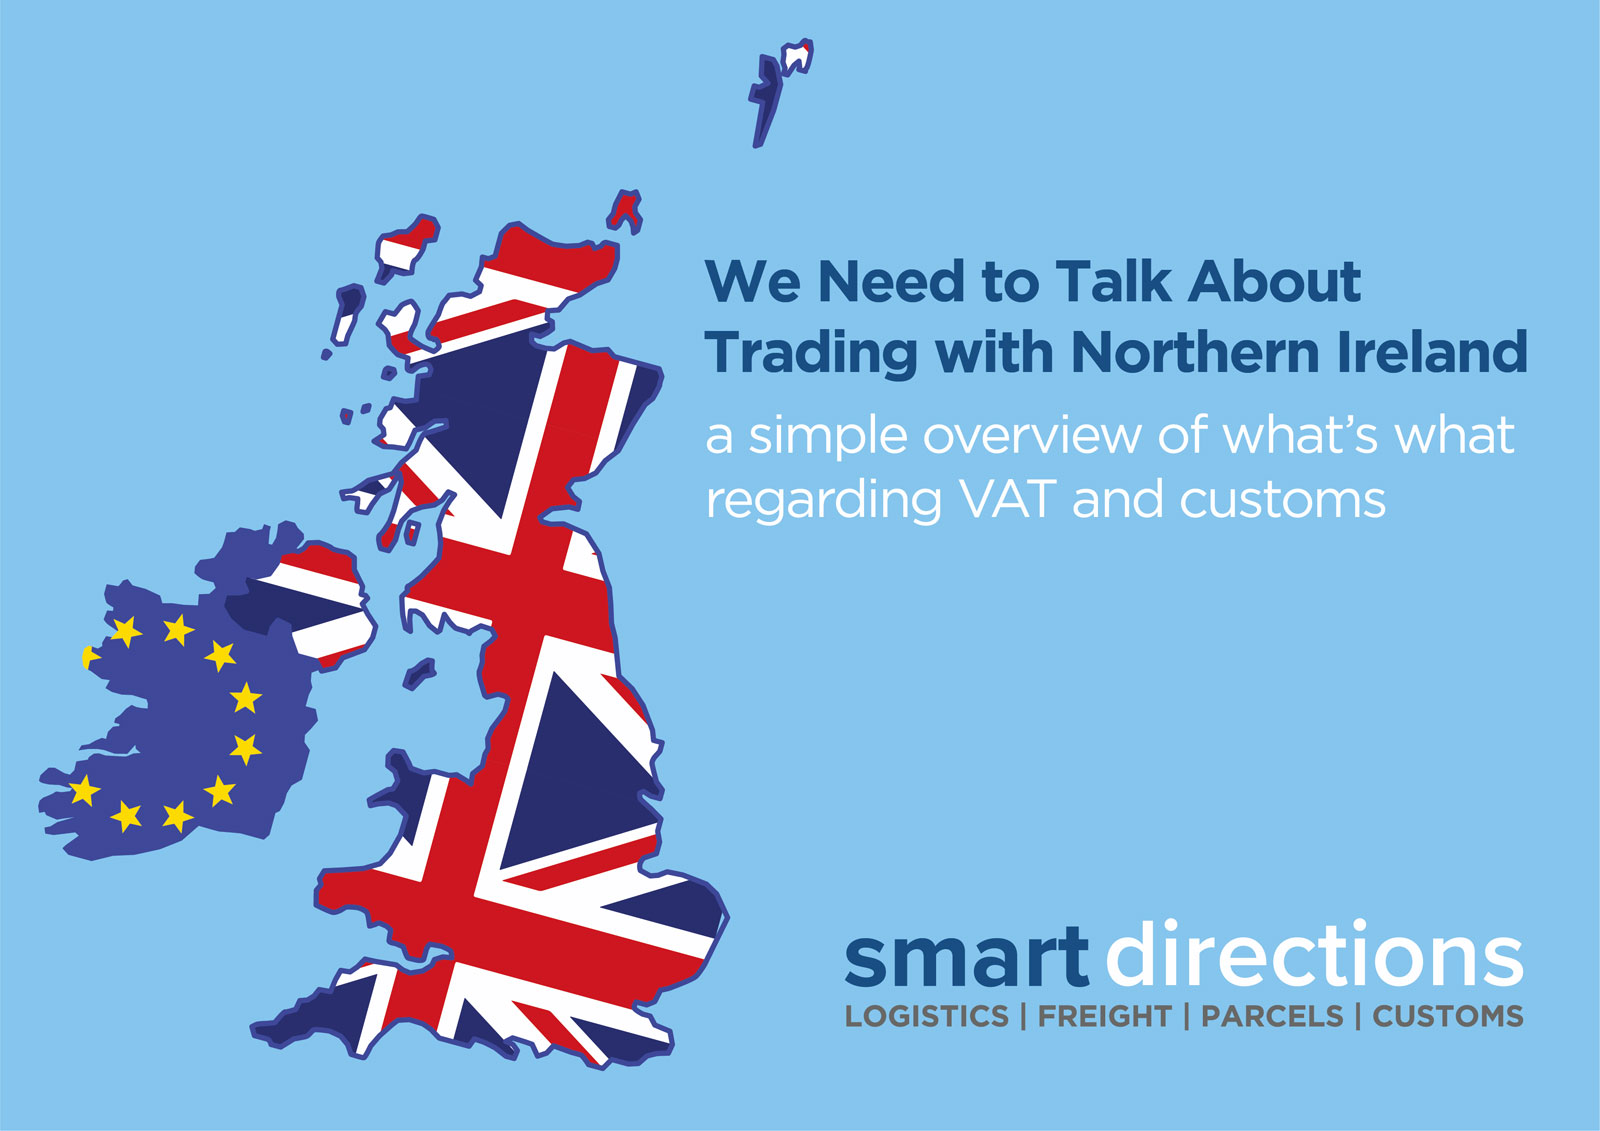 Trading with Northern Ireland